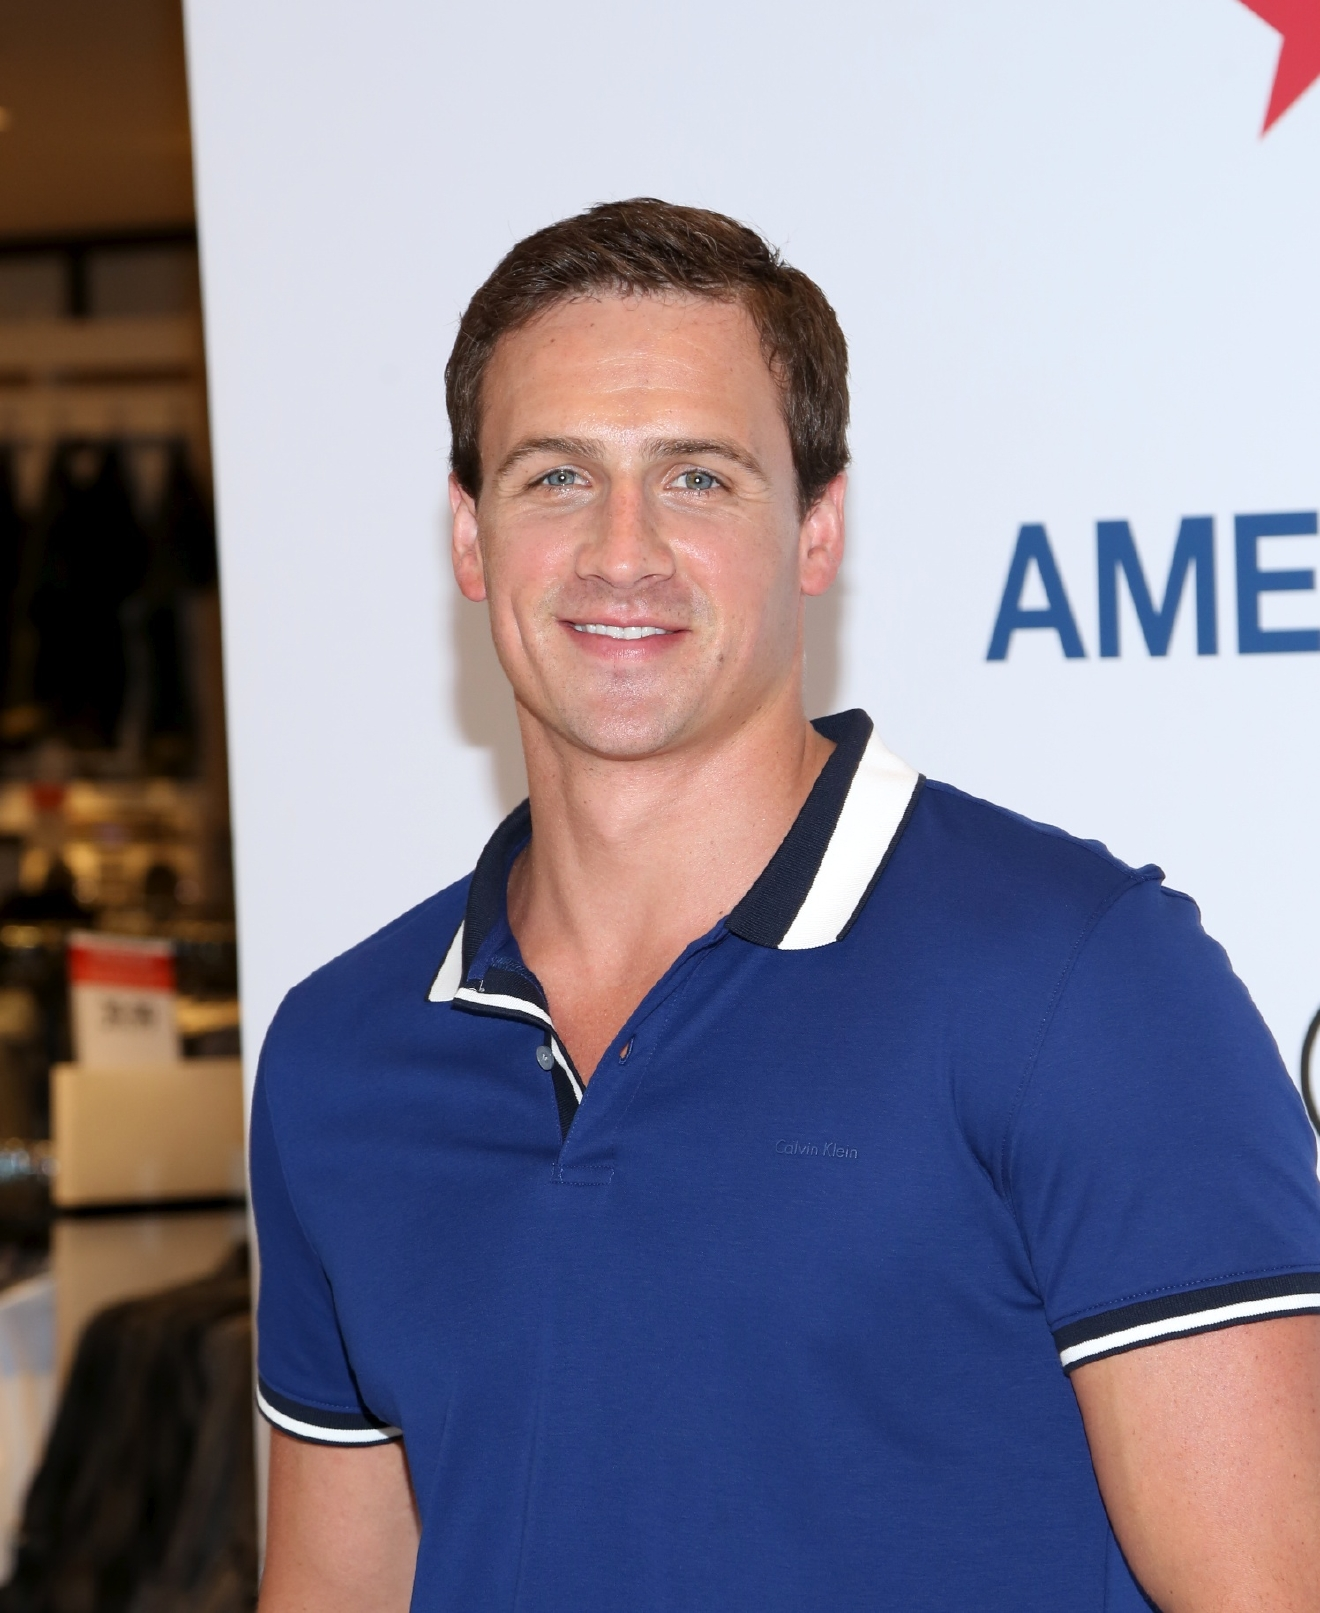 Macy's and Calvin Klein White Label event at Macy's Herald Square                                    Featuring: Ryan Lochte                  Where: New York, New York, United States                  When: 21 May 2014                  Credit: Andres Otero/WENN.com